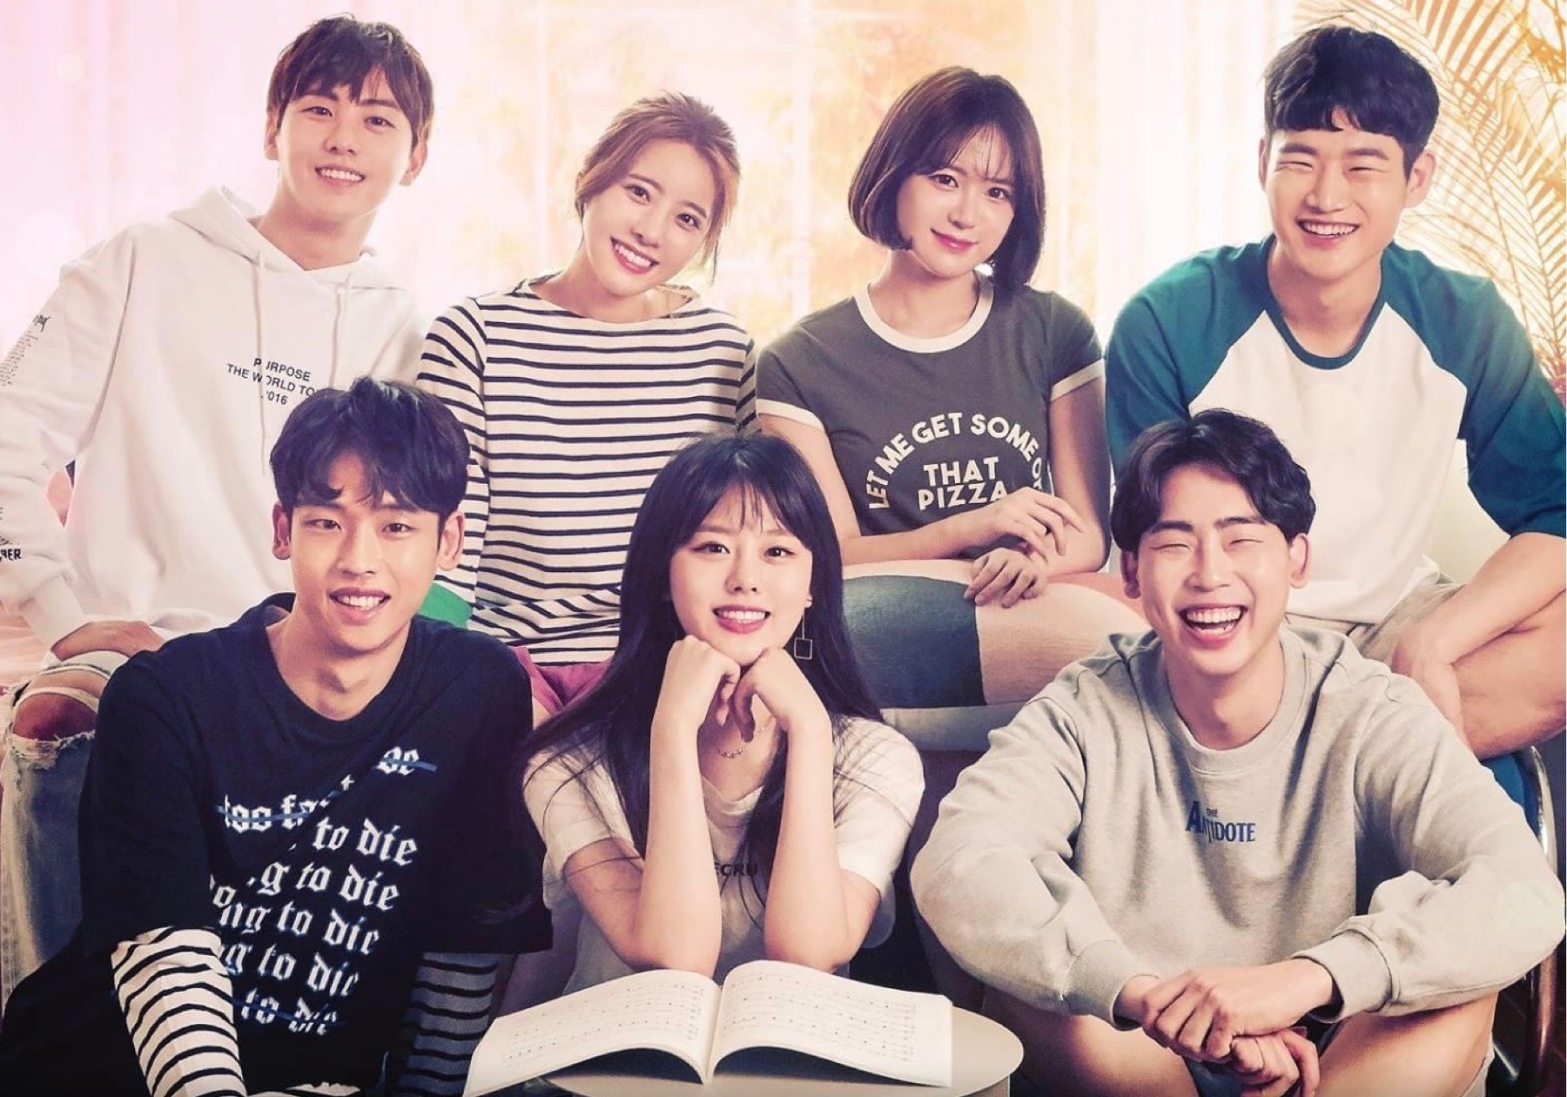 Love Playlist 2, web drama poster.